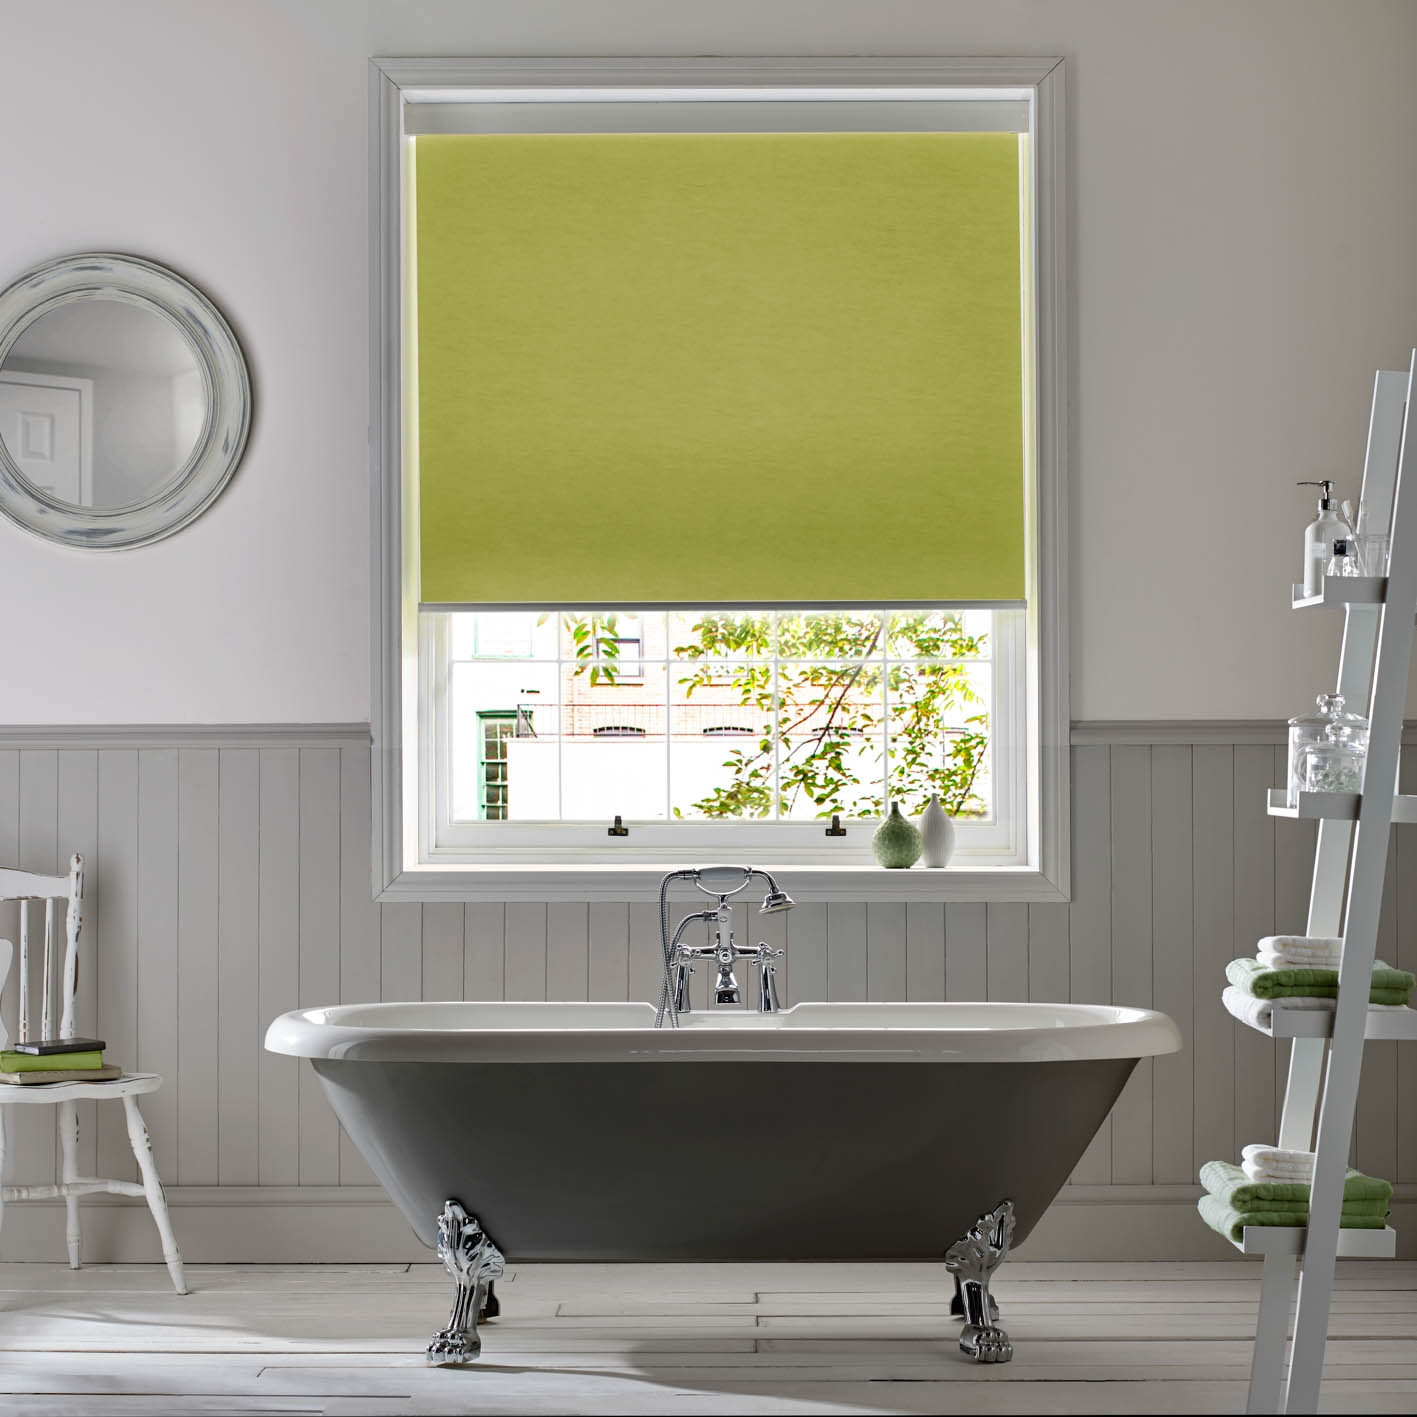 Roller Window Blinds With Ultra One Touch Control Appeal Home For Bathroom Blinds (Image 12 of 15)